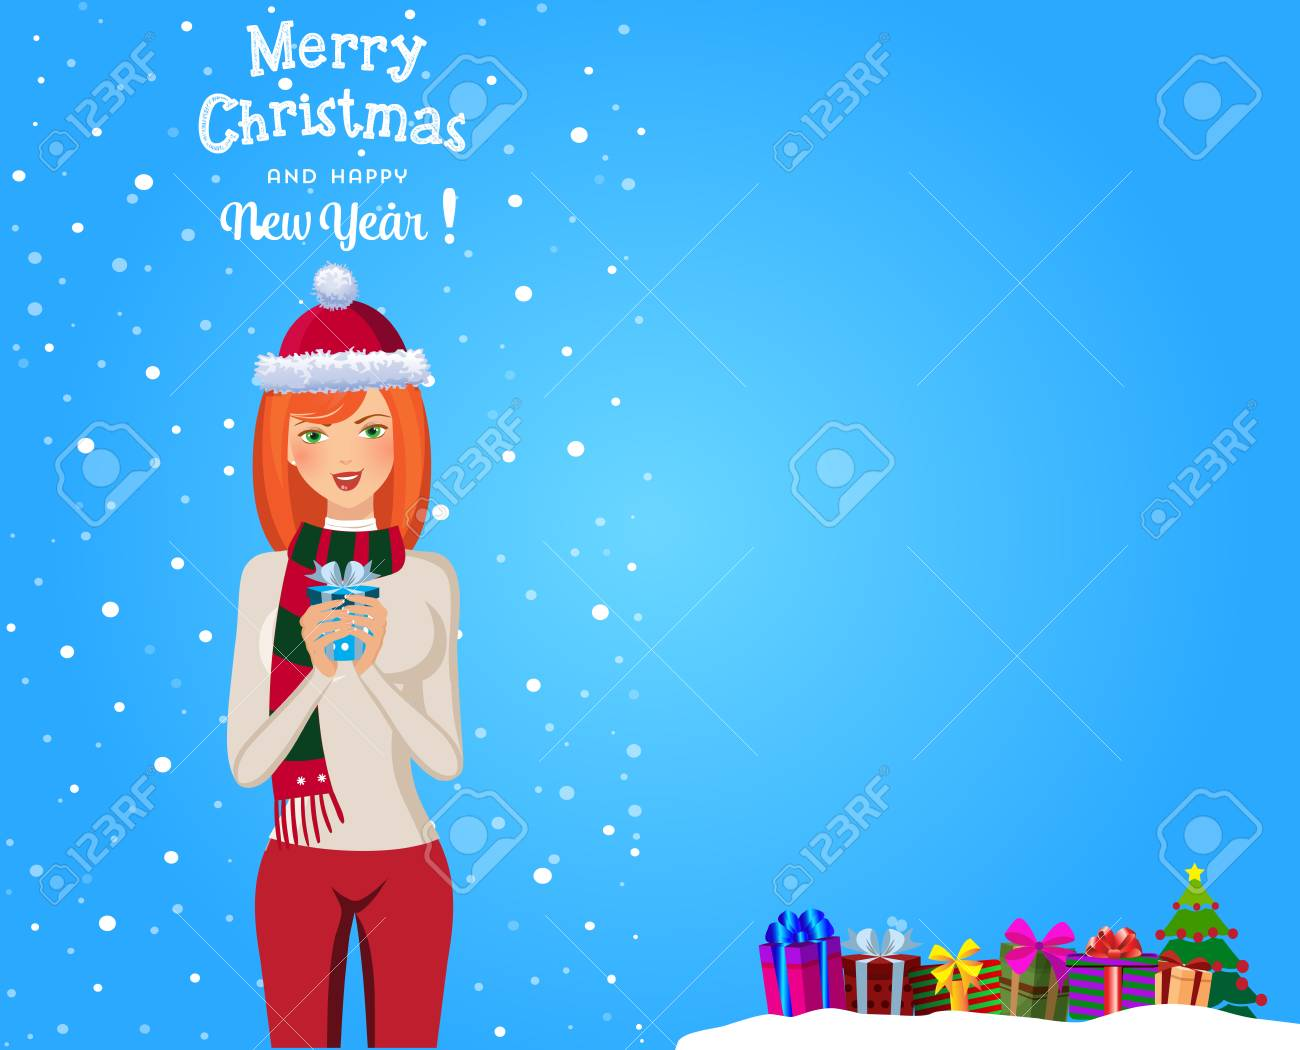 Christmas And New Year Template With Cute Redheaded Girl In Santa ...